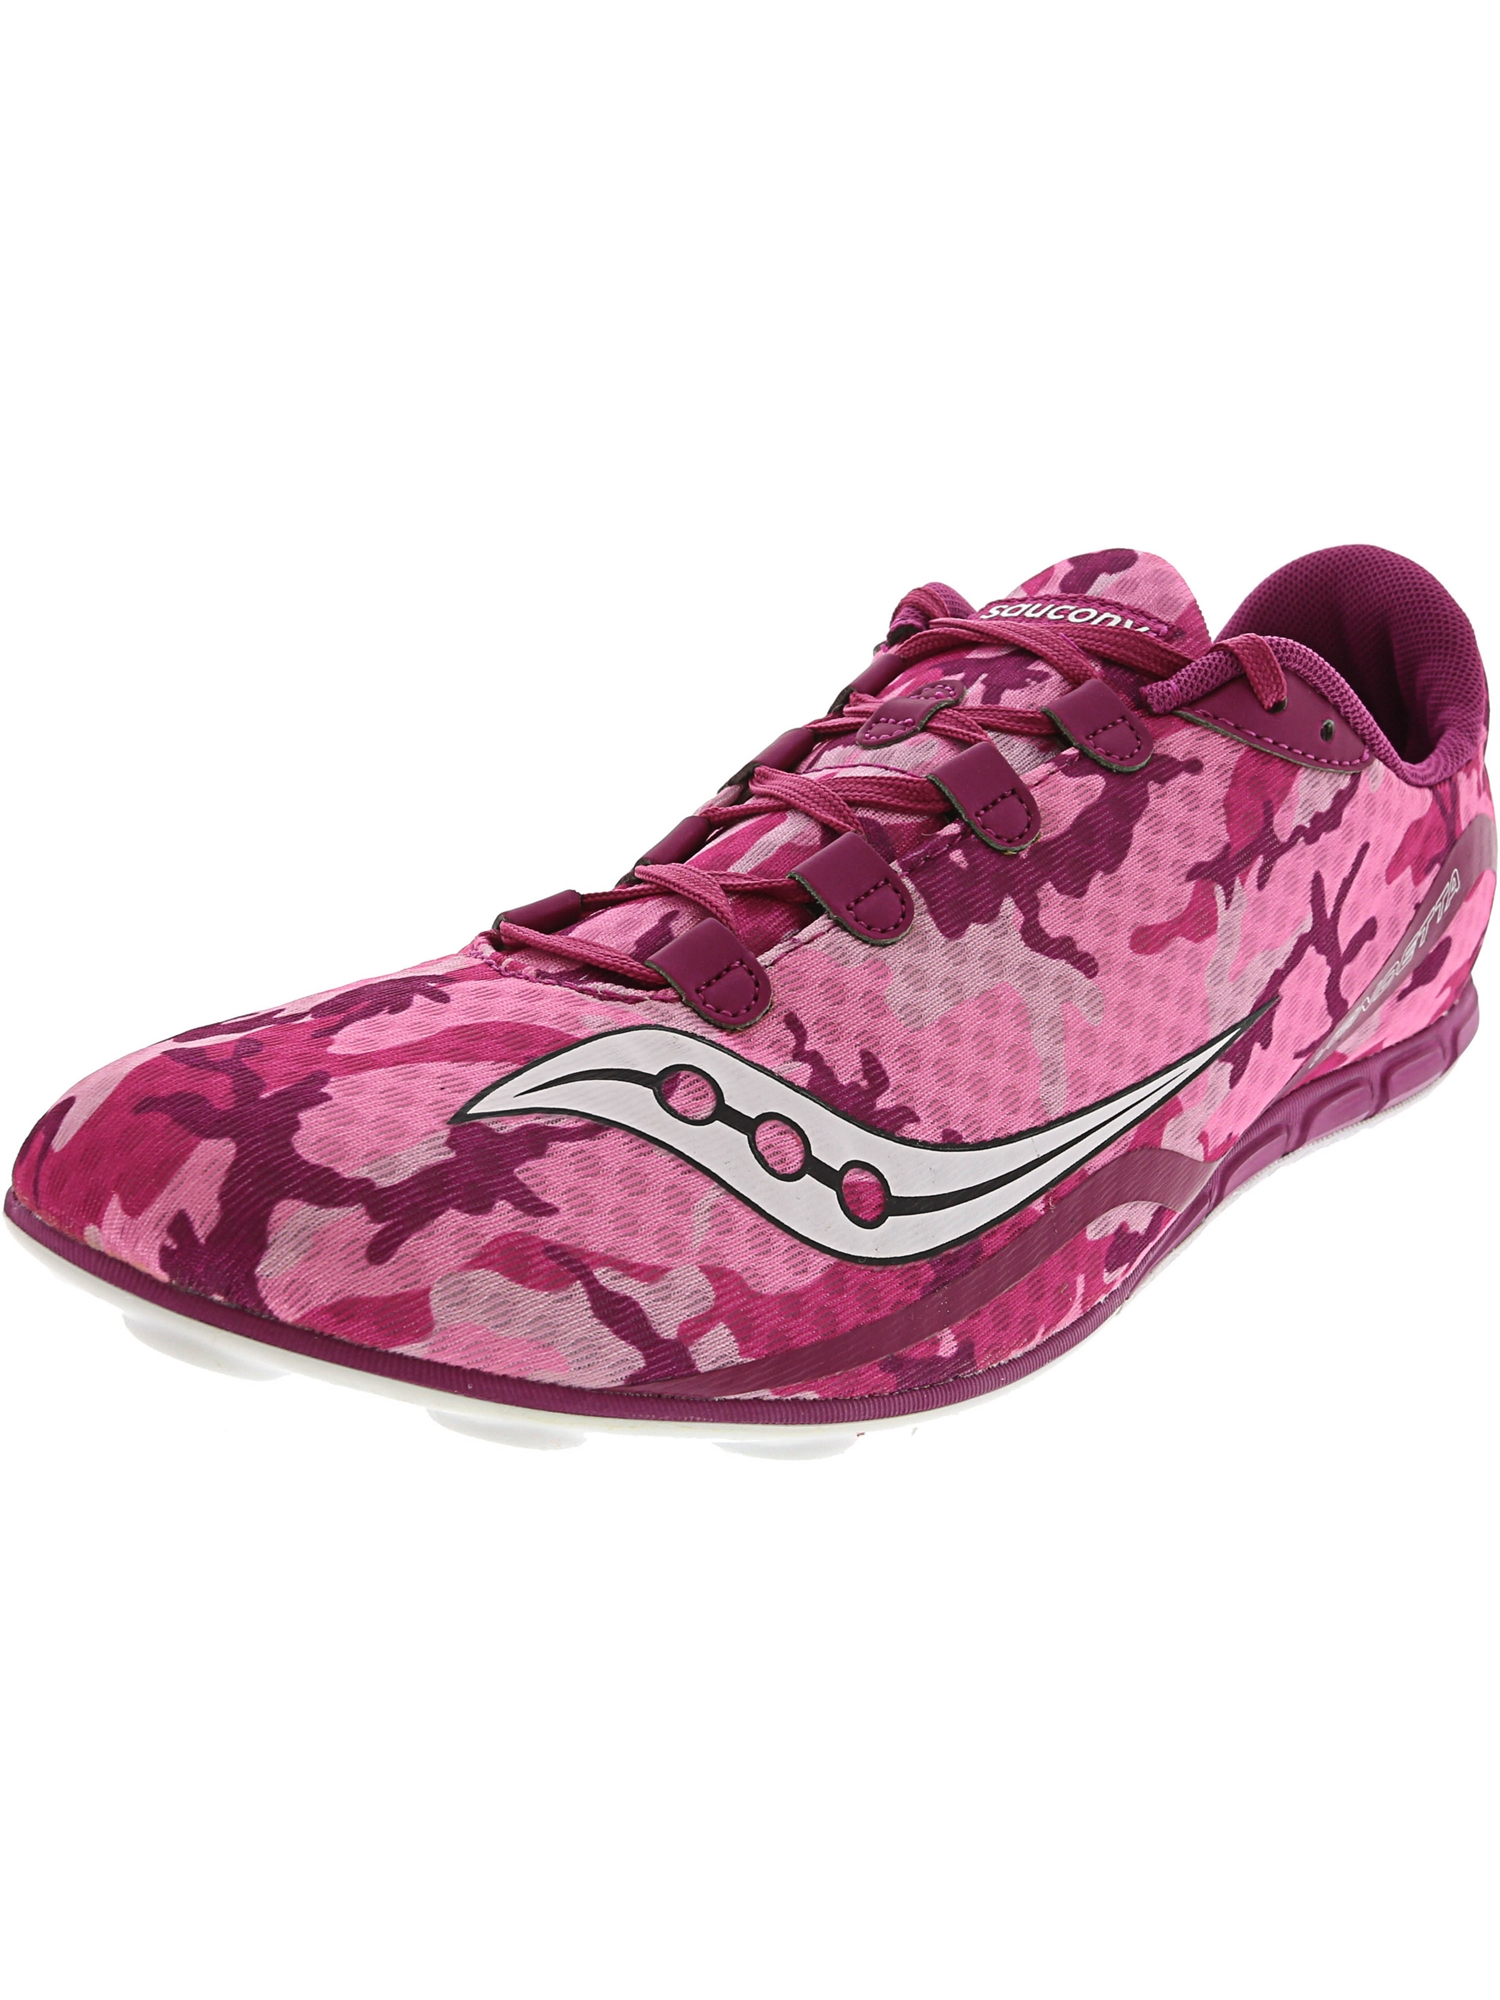 Saucony Women's Vendetta Pink/White Ankle-High Running Shoe - 12M